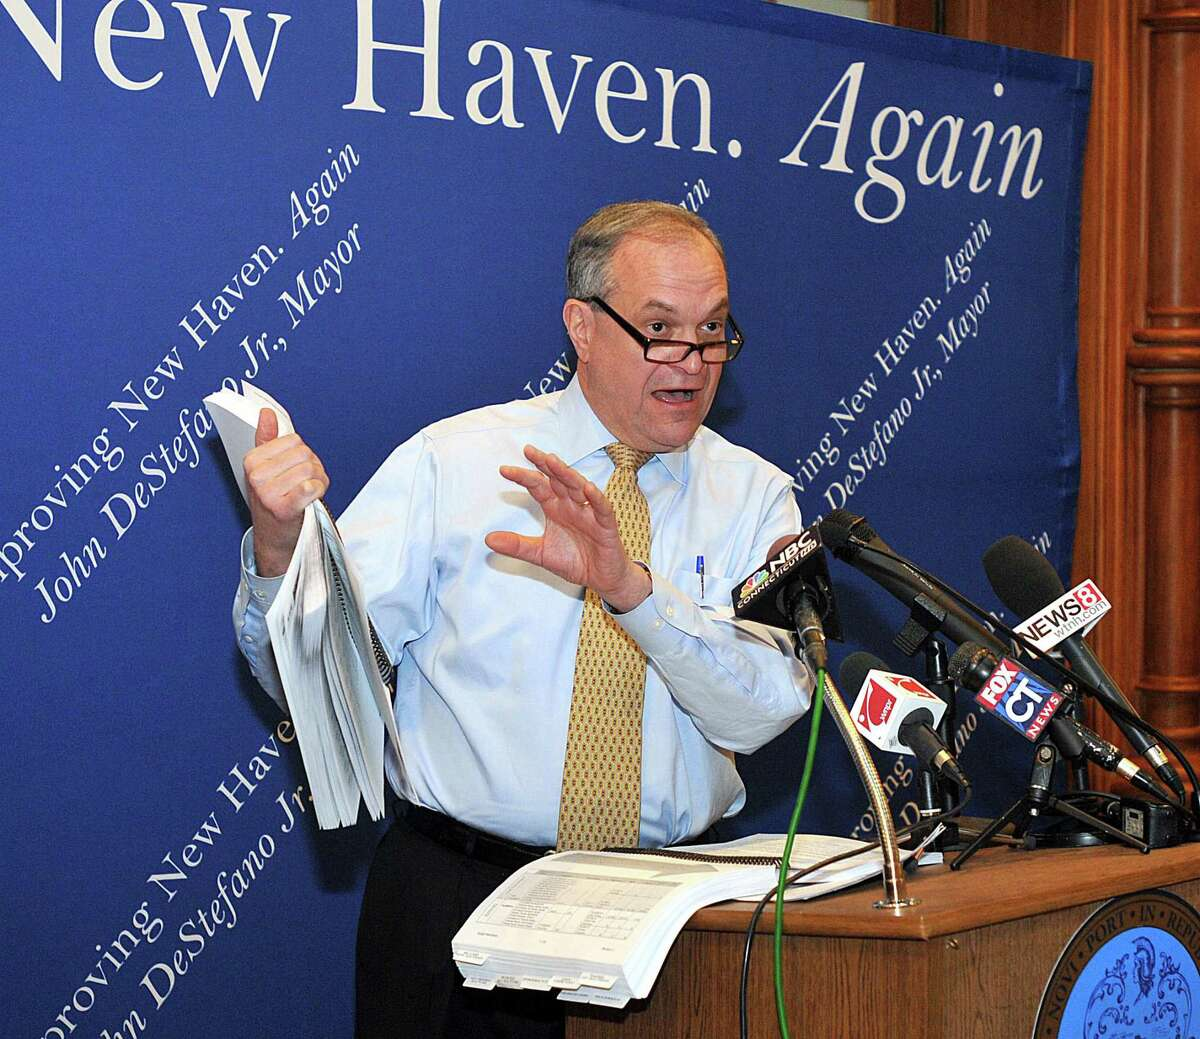 New Haven-- Mayor John DeStefano Jr., unveils his new city budget during a press conference at City Hall. Photo by Peter Casolino/New Haven Register03/01/11 Cas110301